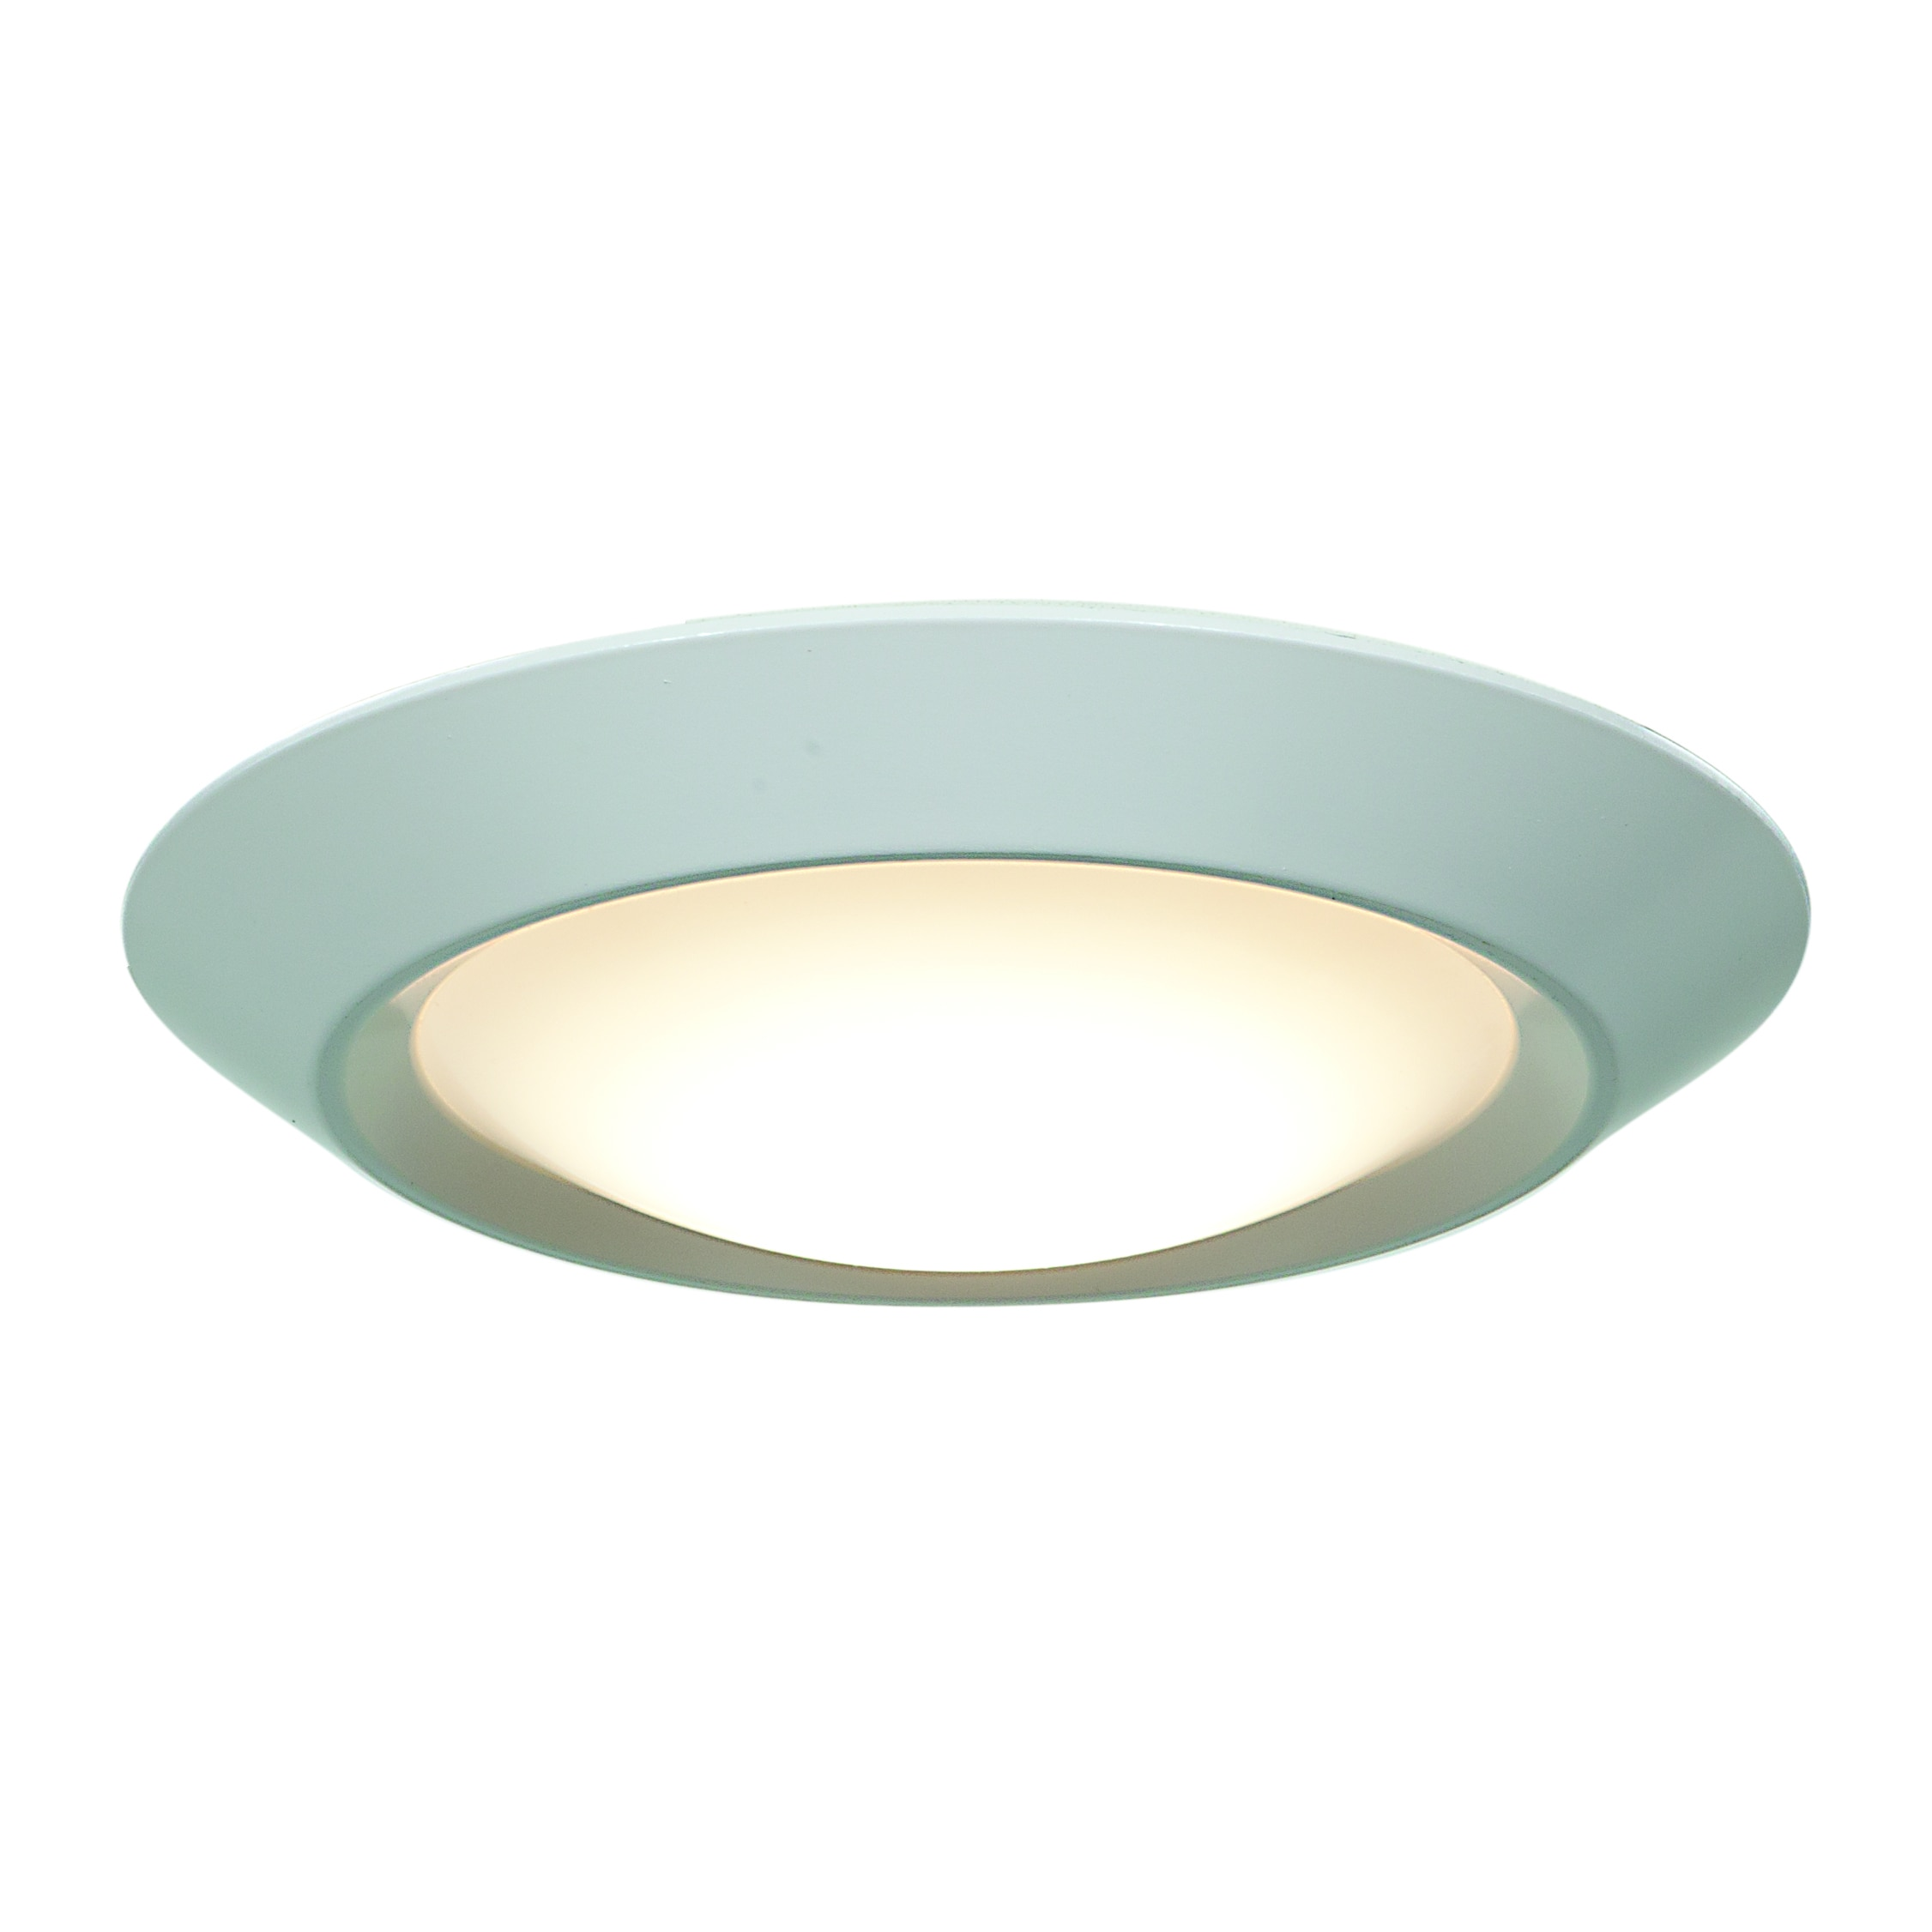 Access Lighting Mini Led 7 Inch Flush Mount Free Shipping On Orders Over 45 10010027